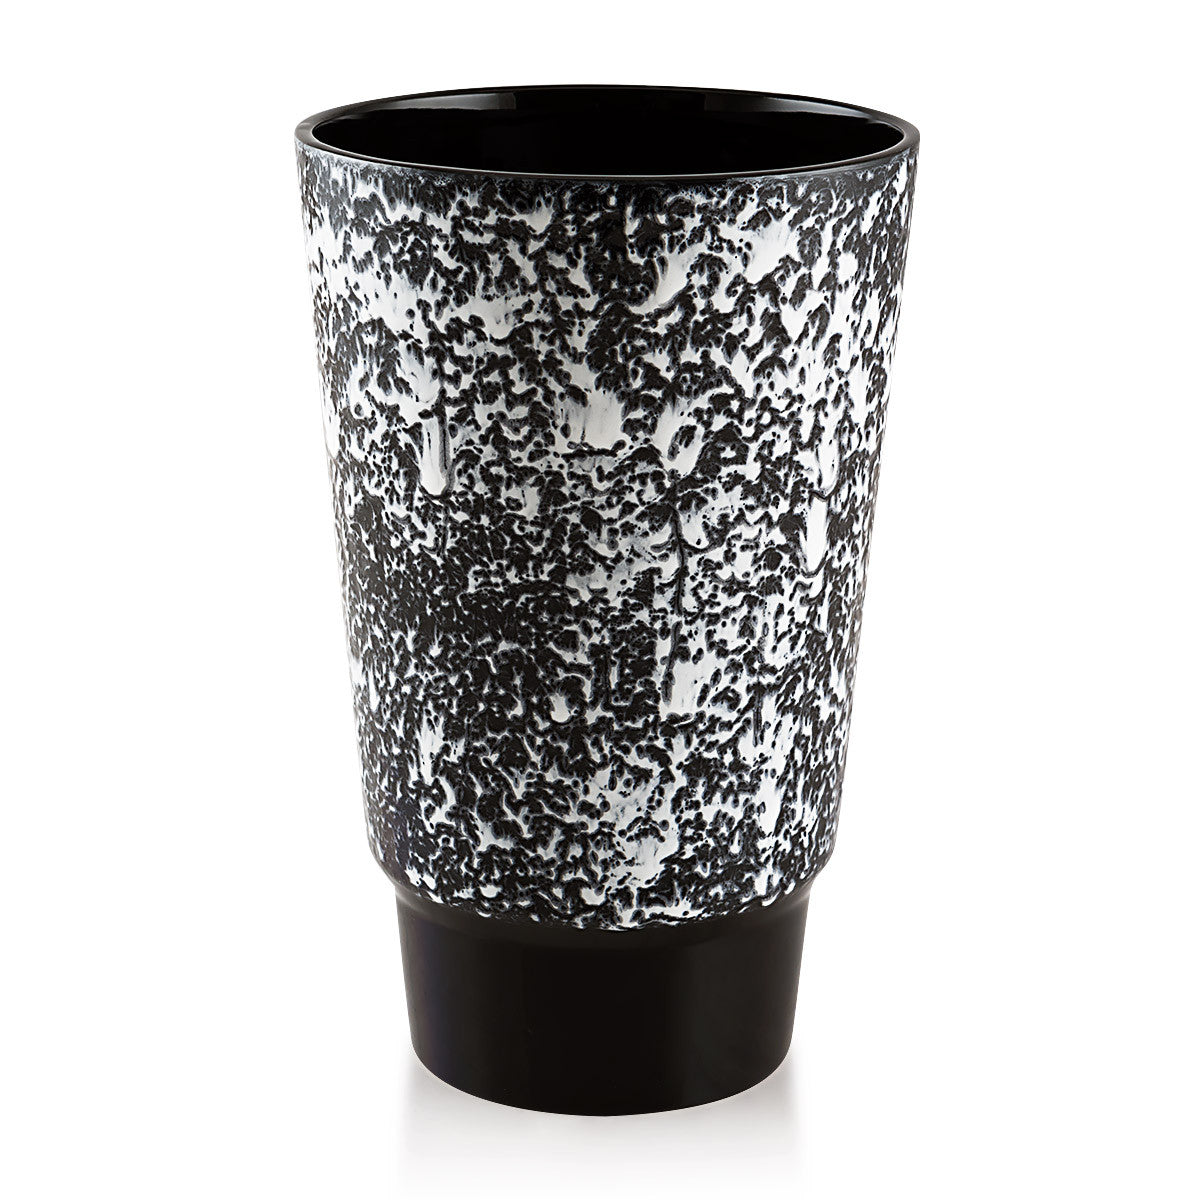 Ceramic contemporary vase with dripping effect